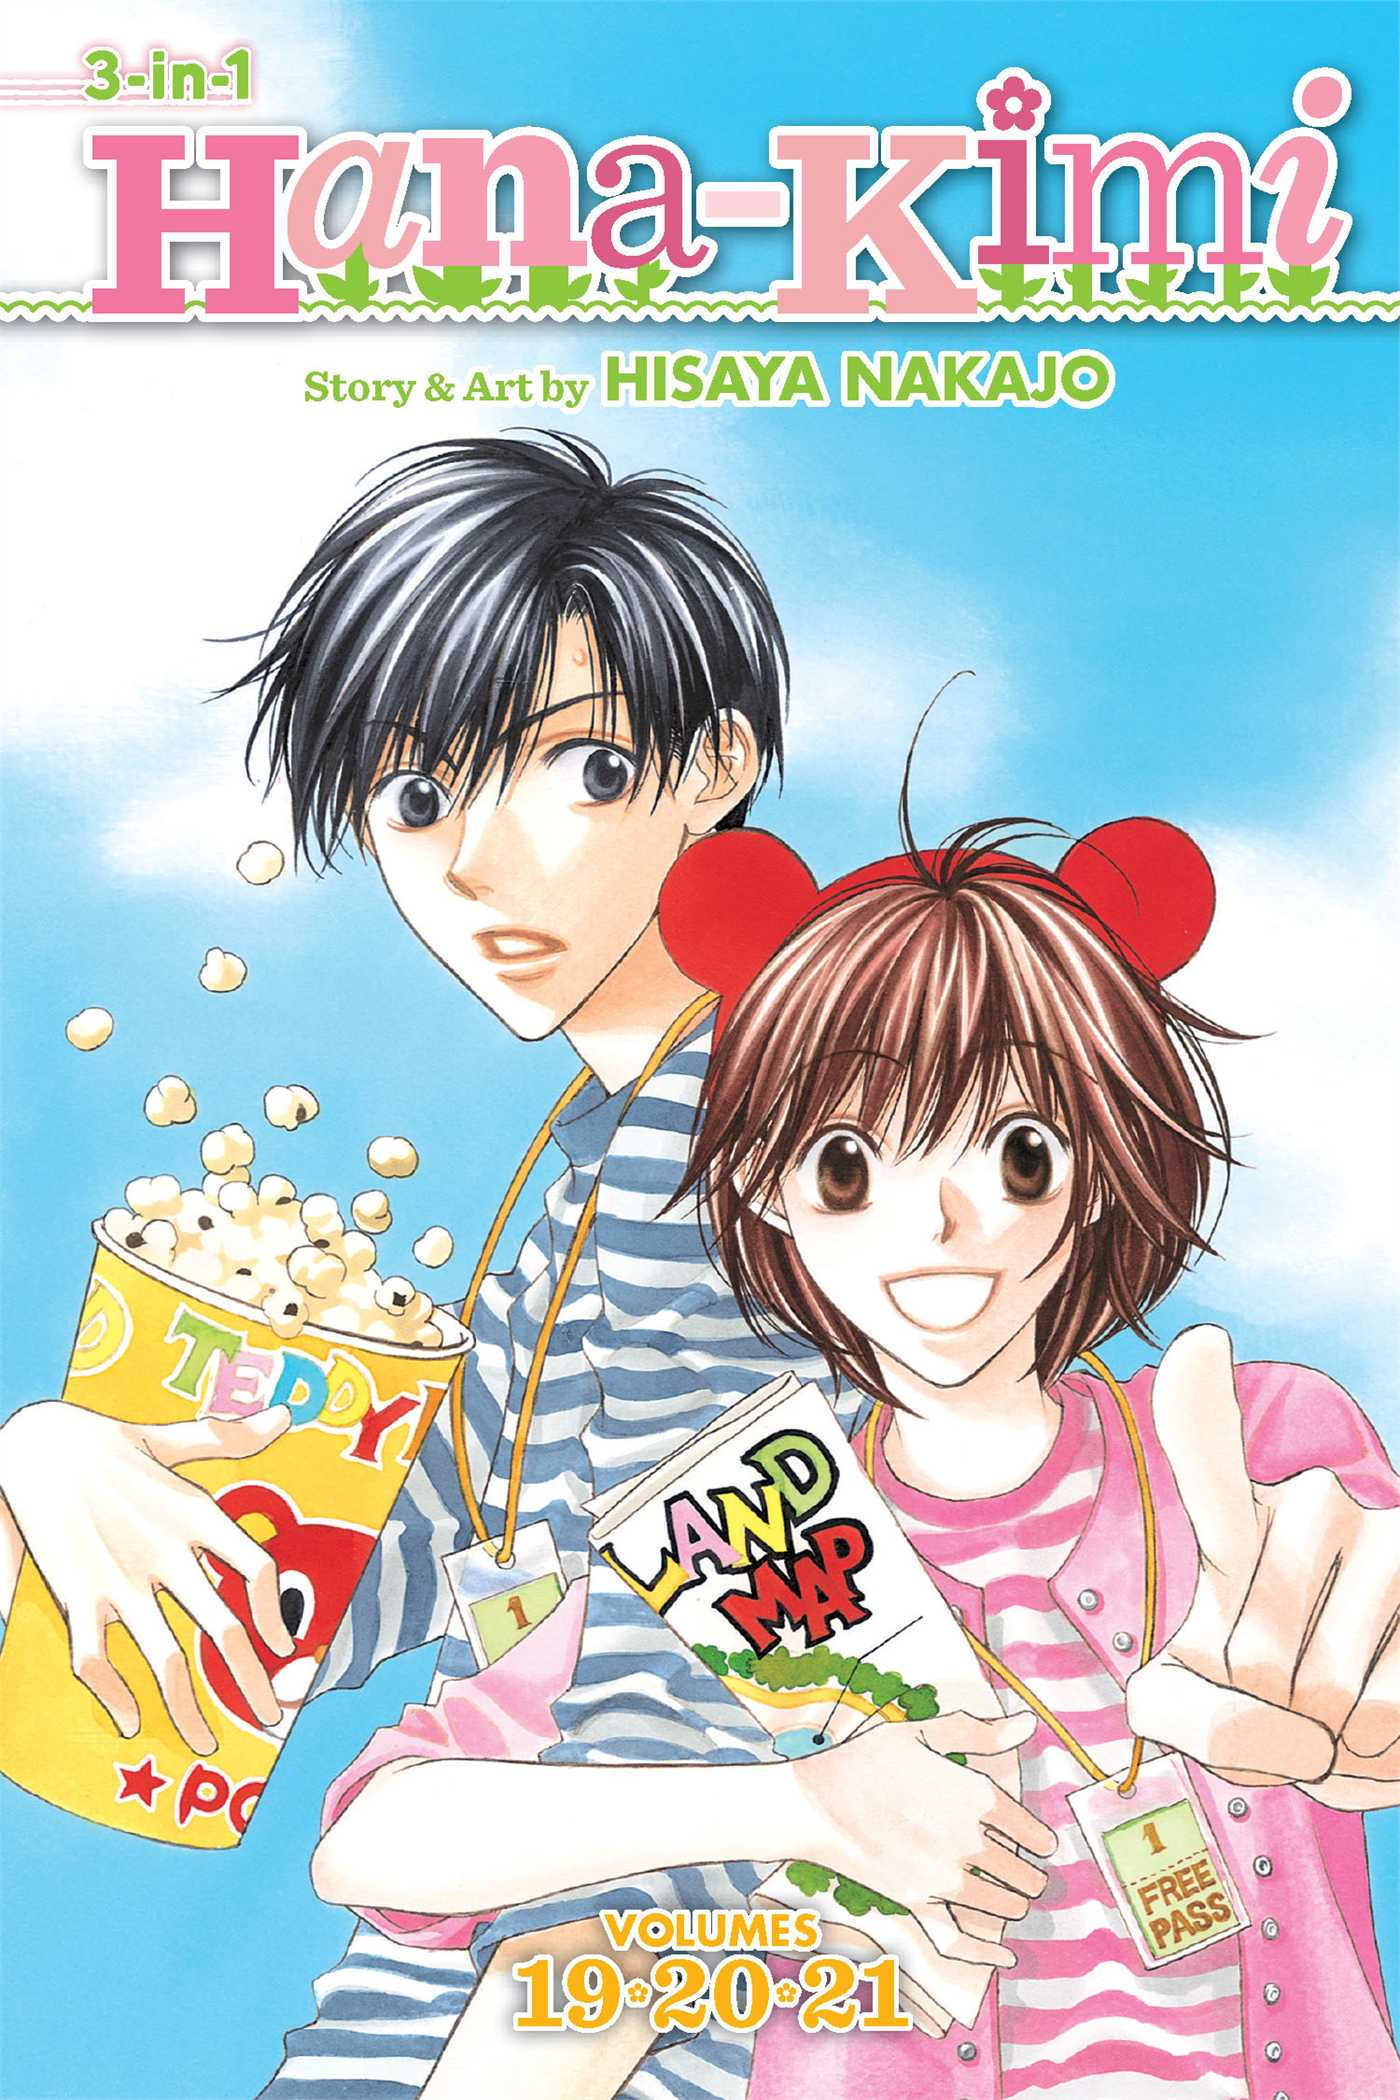 Hana-kimi-3-in-1-edition-vol-7-9781421554853_hr